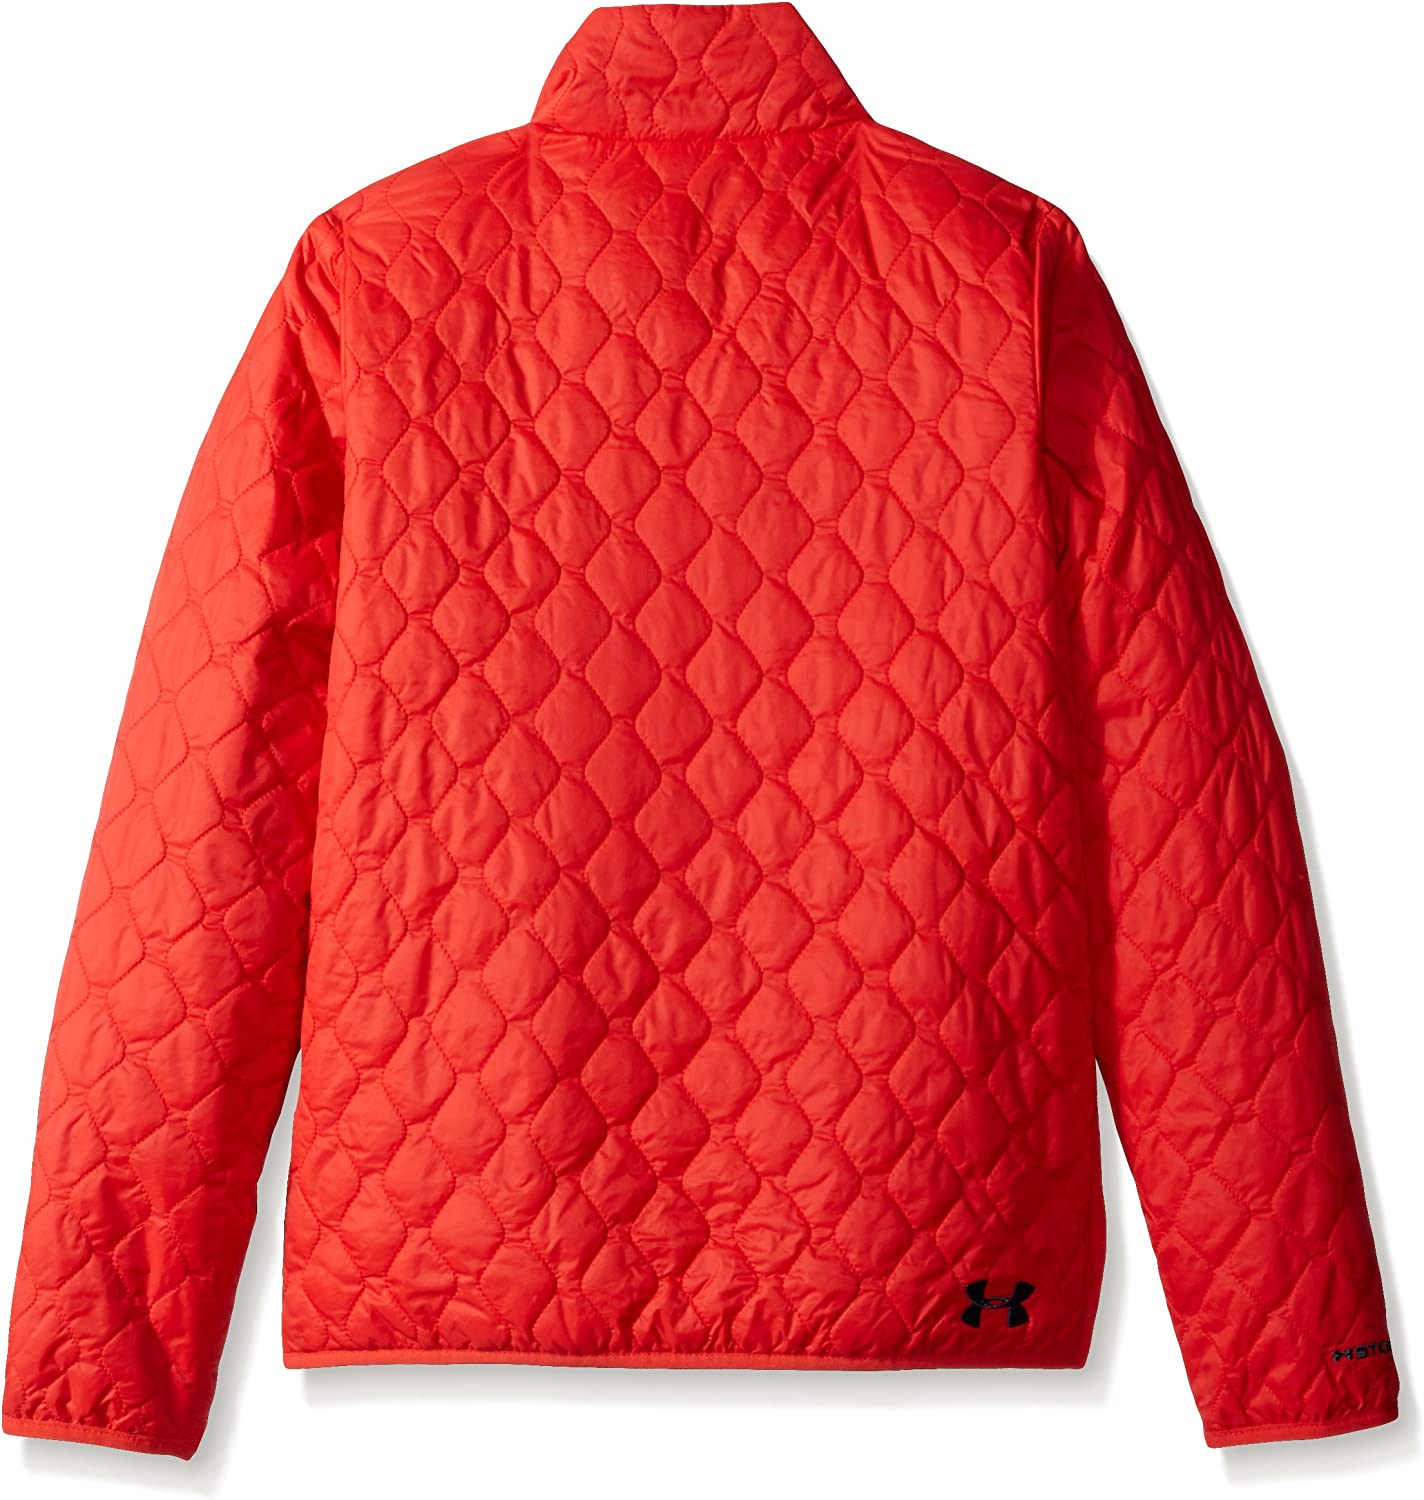 Pomegranate 693 Youth Large //Mechanic Blue Under Armour Girls ColdGear Infrared Hillcrest Hooded Shell